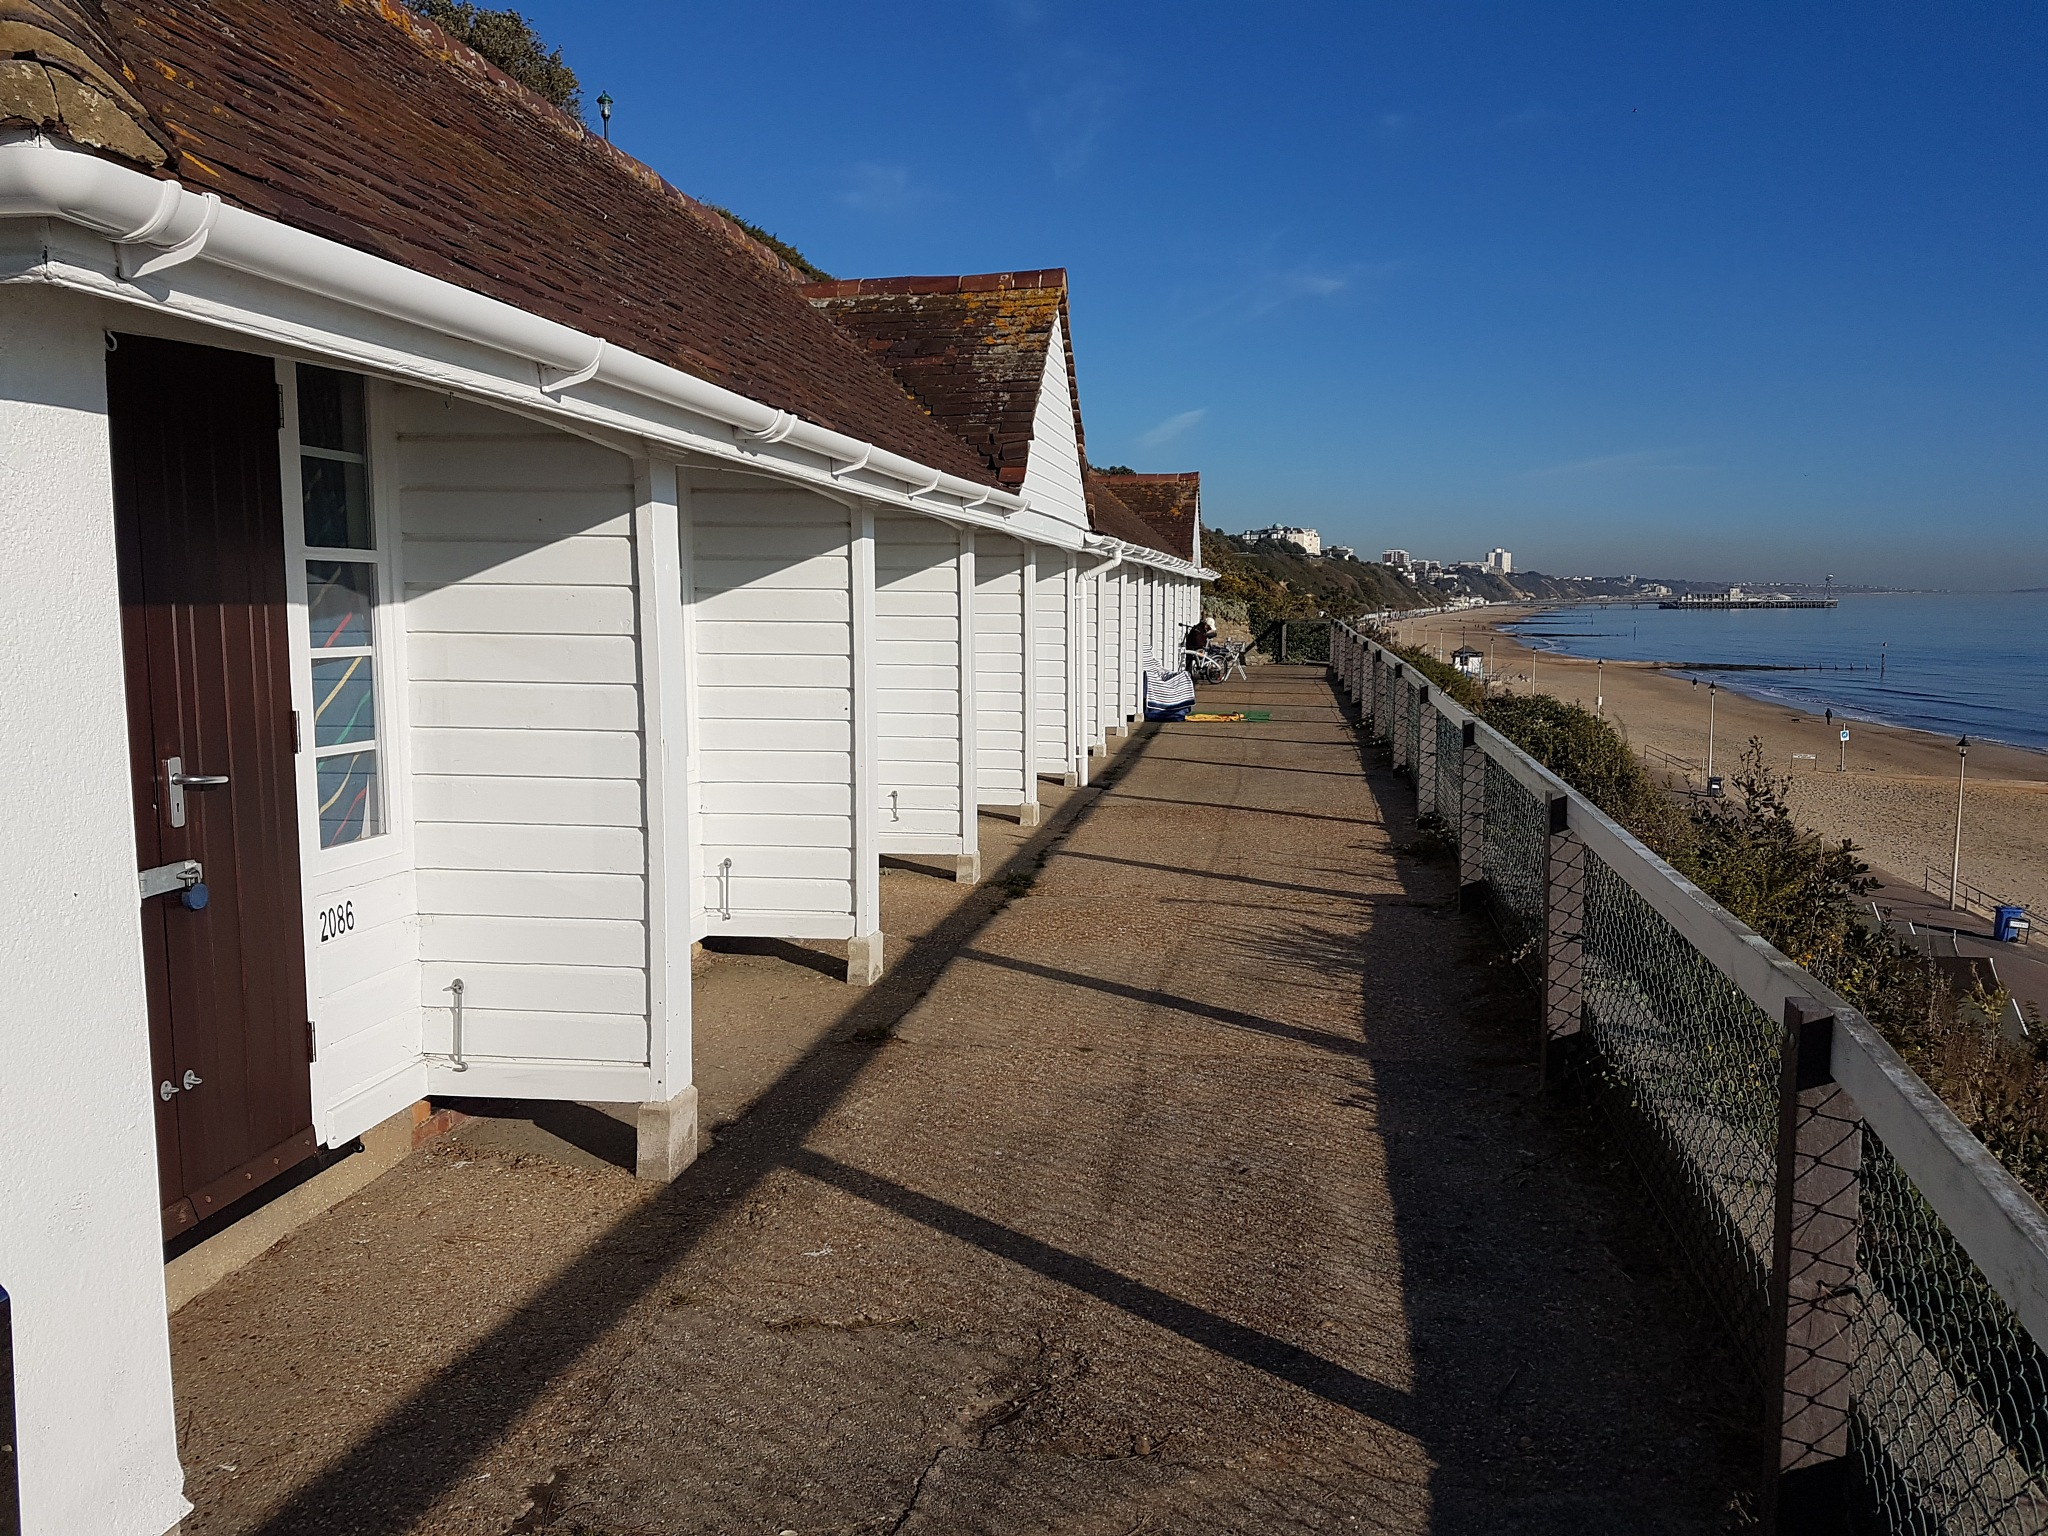 Beach huts. by DonaldCusack